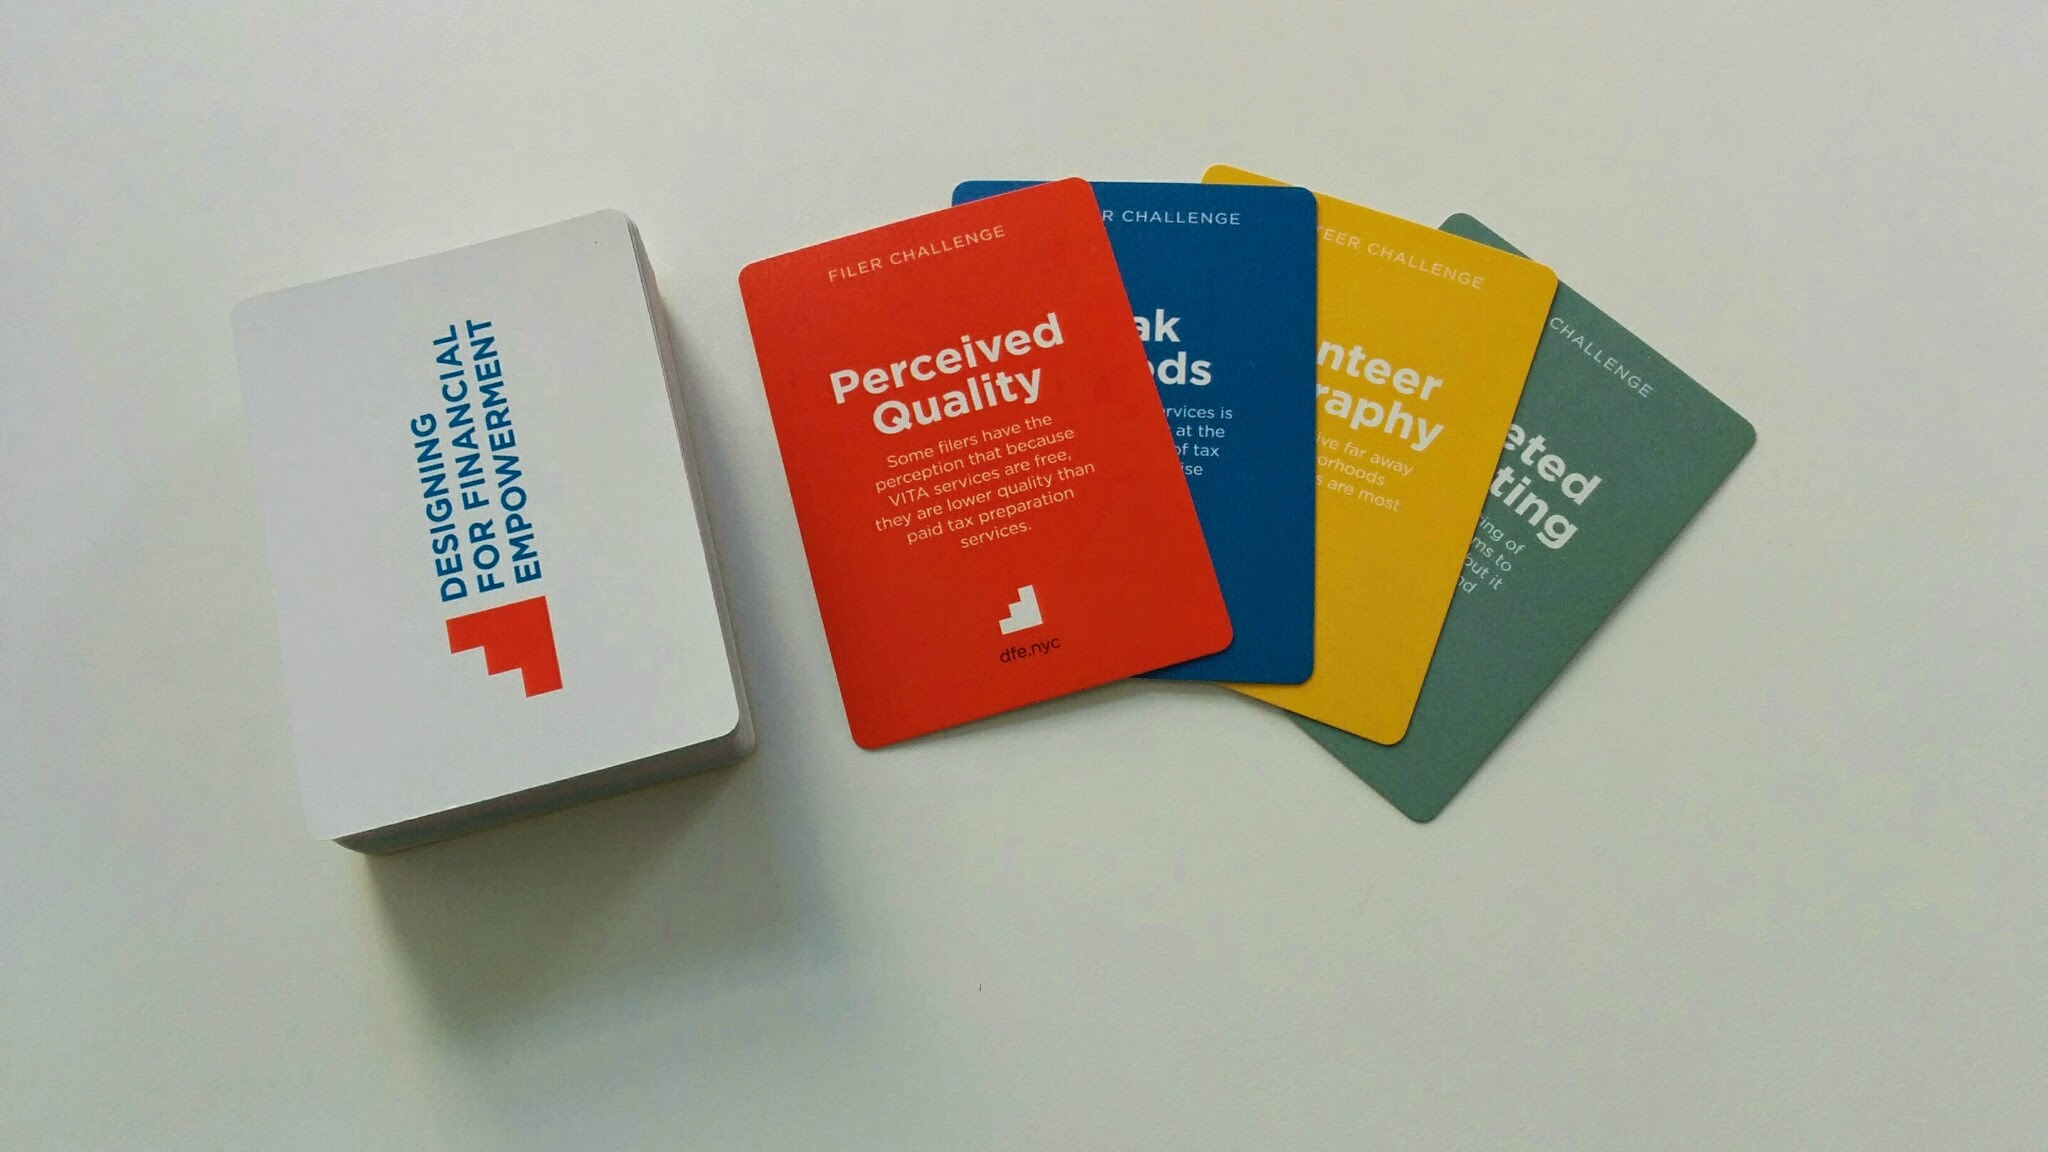 Ideation cards communicate the challenges from discovery findings in a playful way.